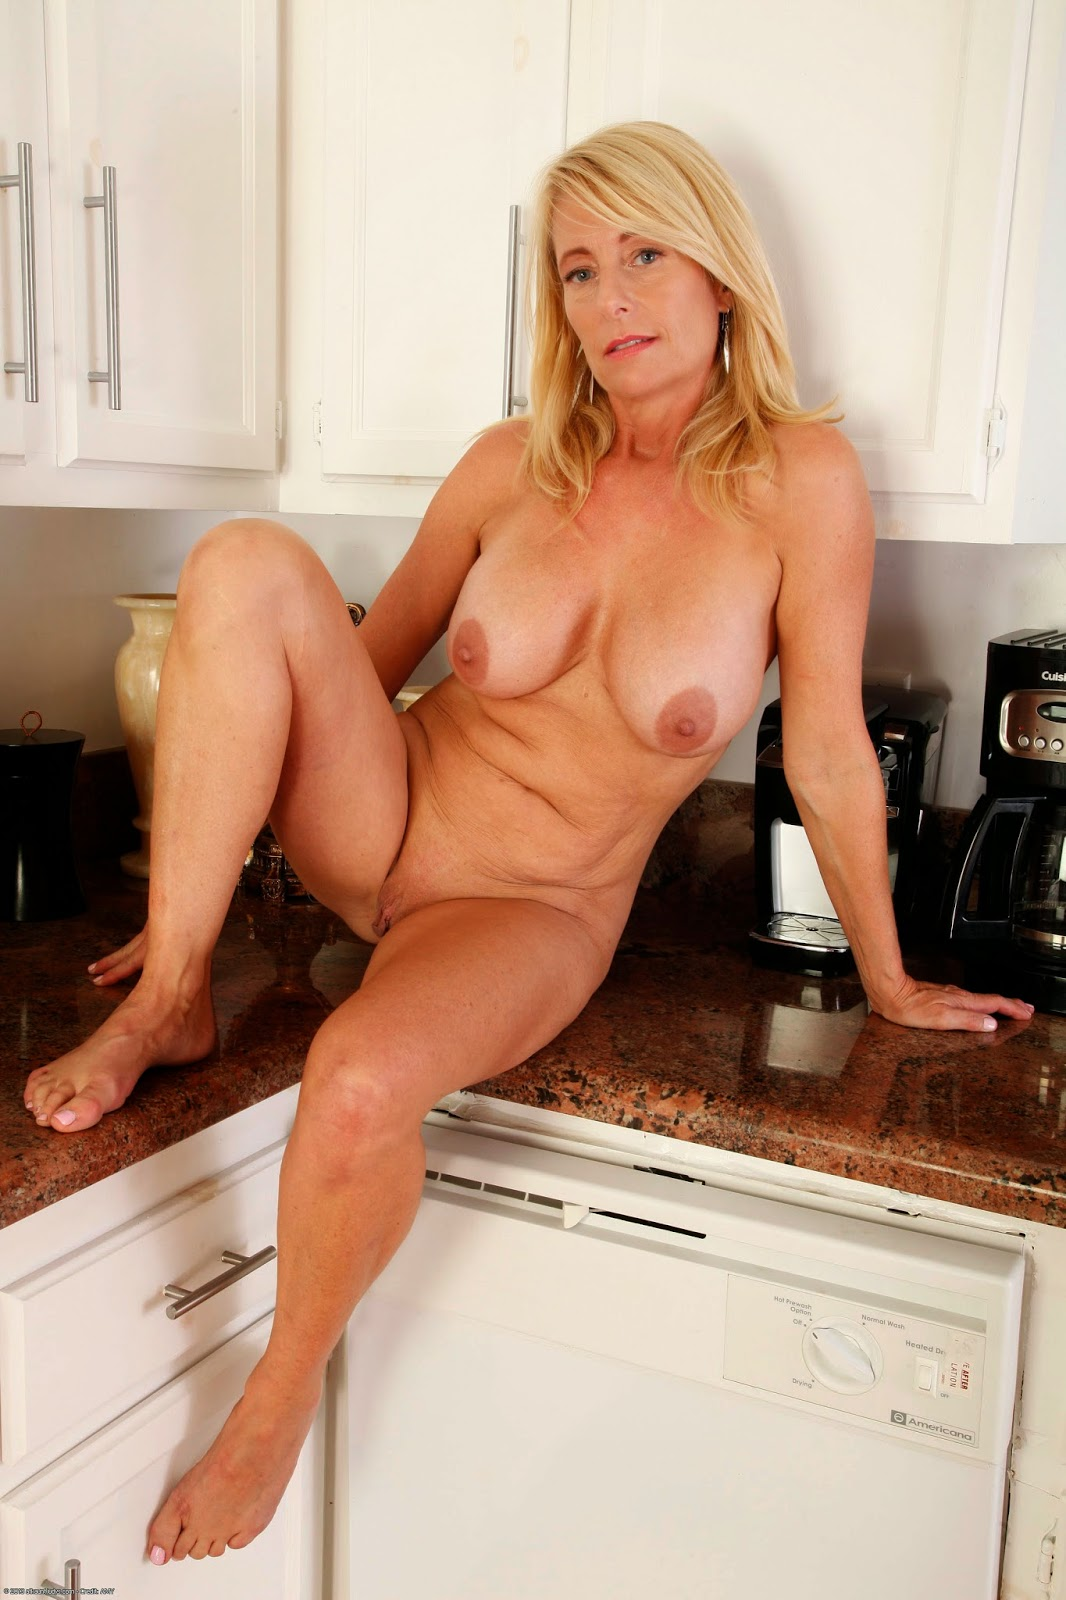 Seems Milf over 50 hot pussy accept. The